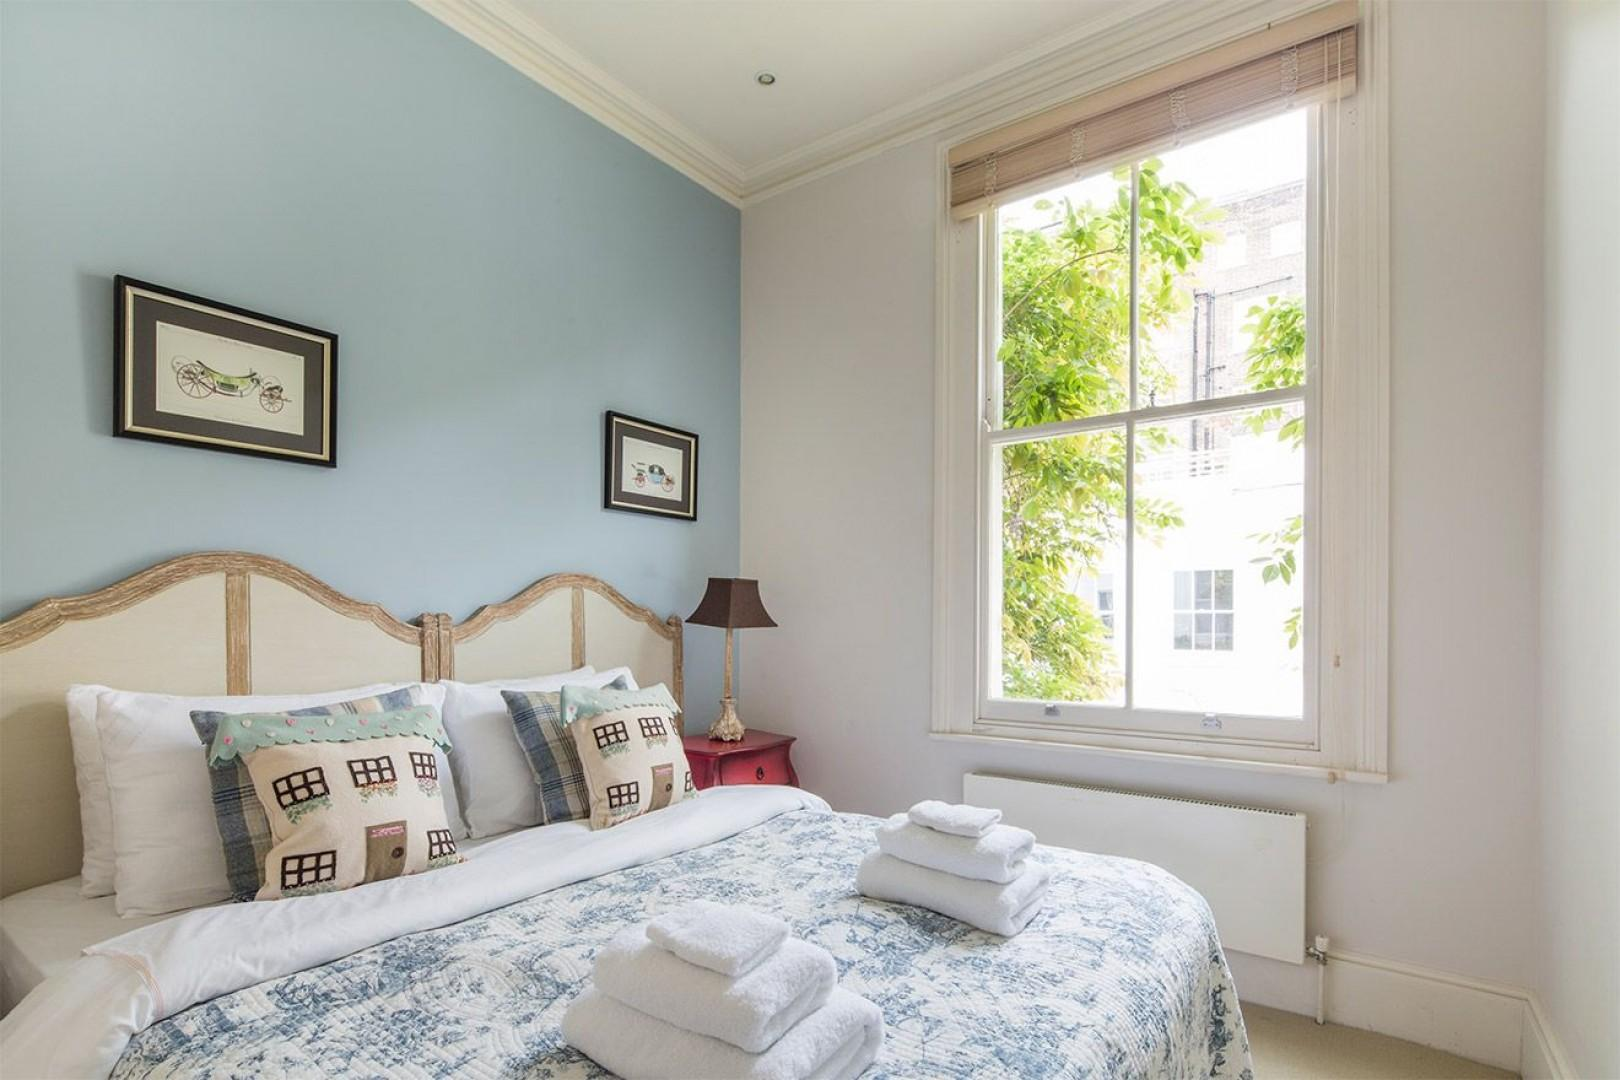 Third bedroom with a comfortable bed that can be pushed apart to form two beds and charming decor